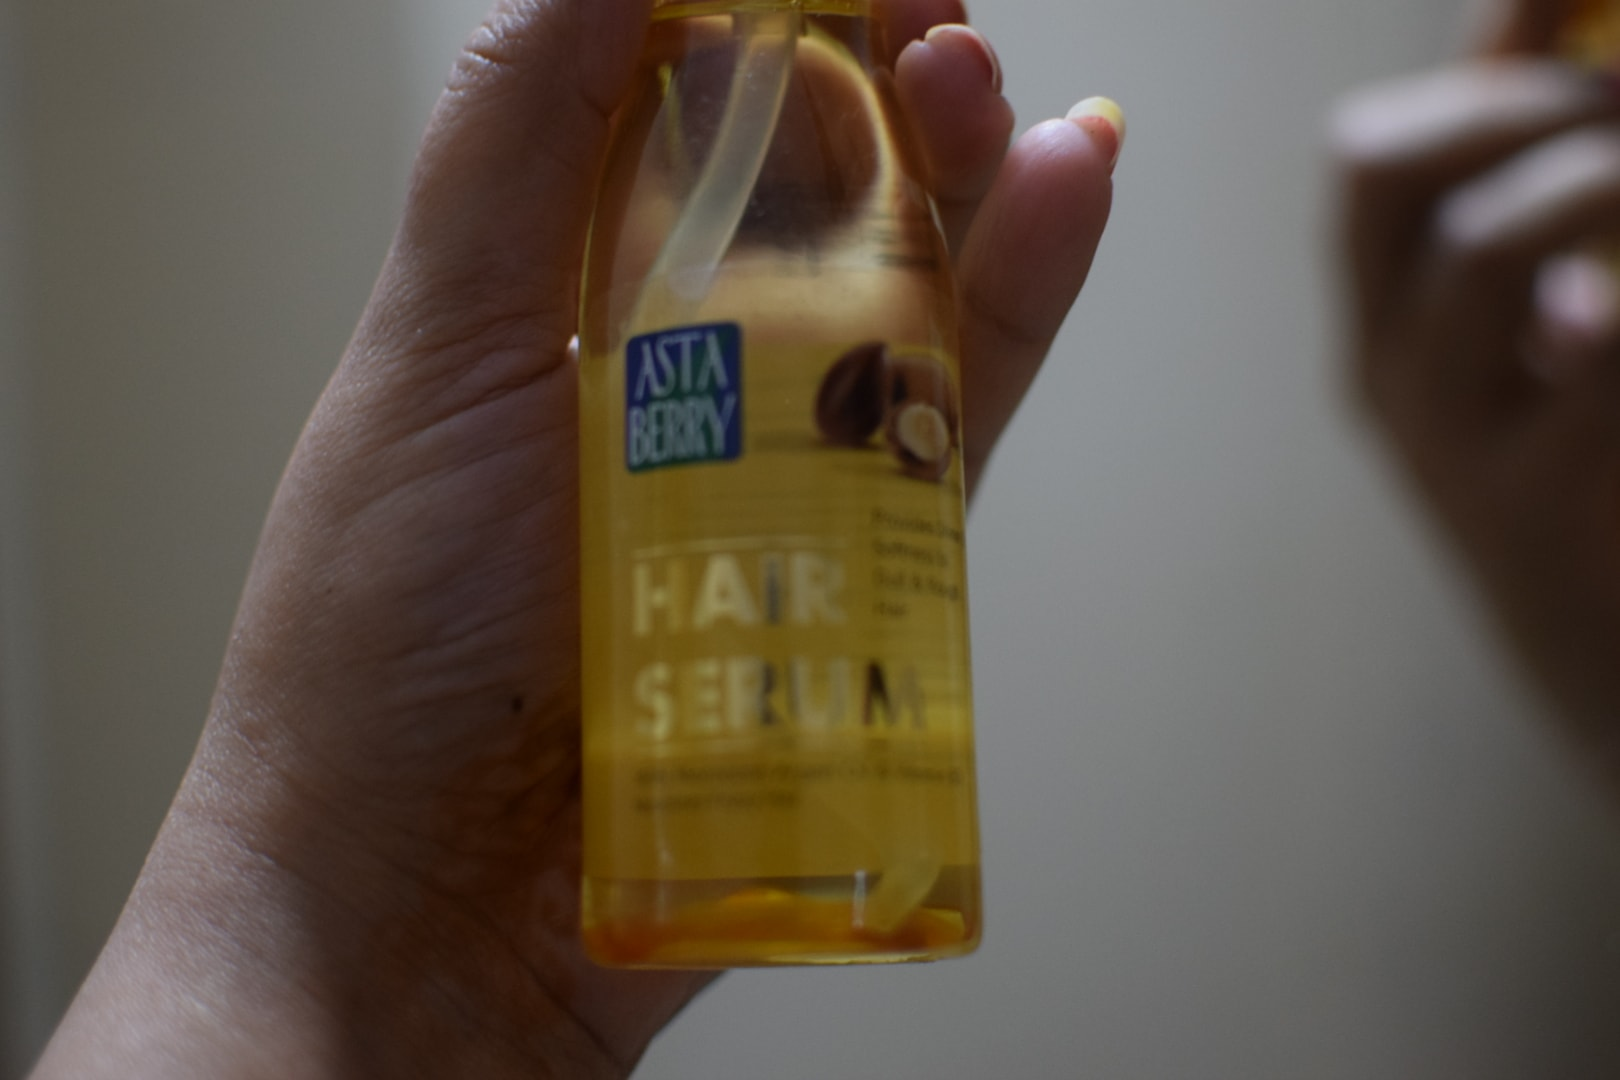 Astaberry Hair Serum Review